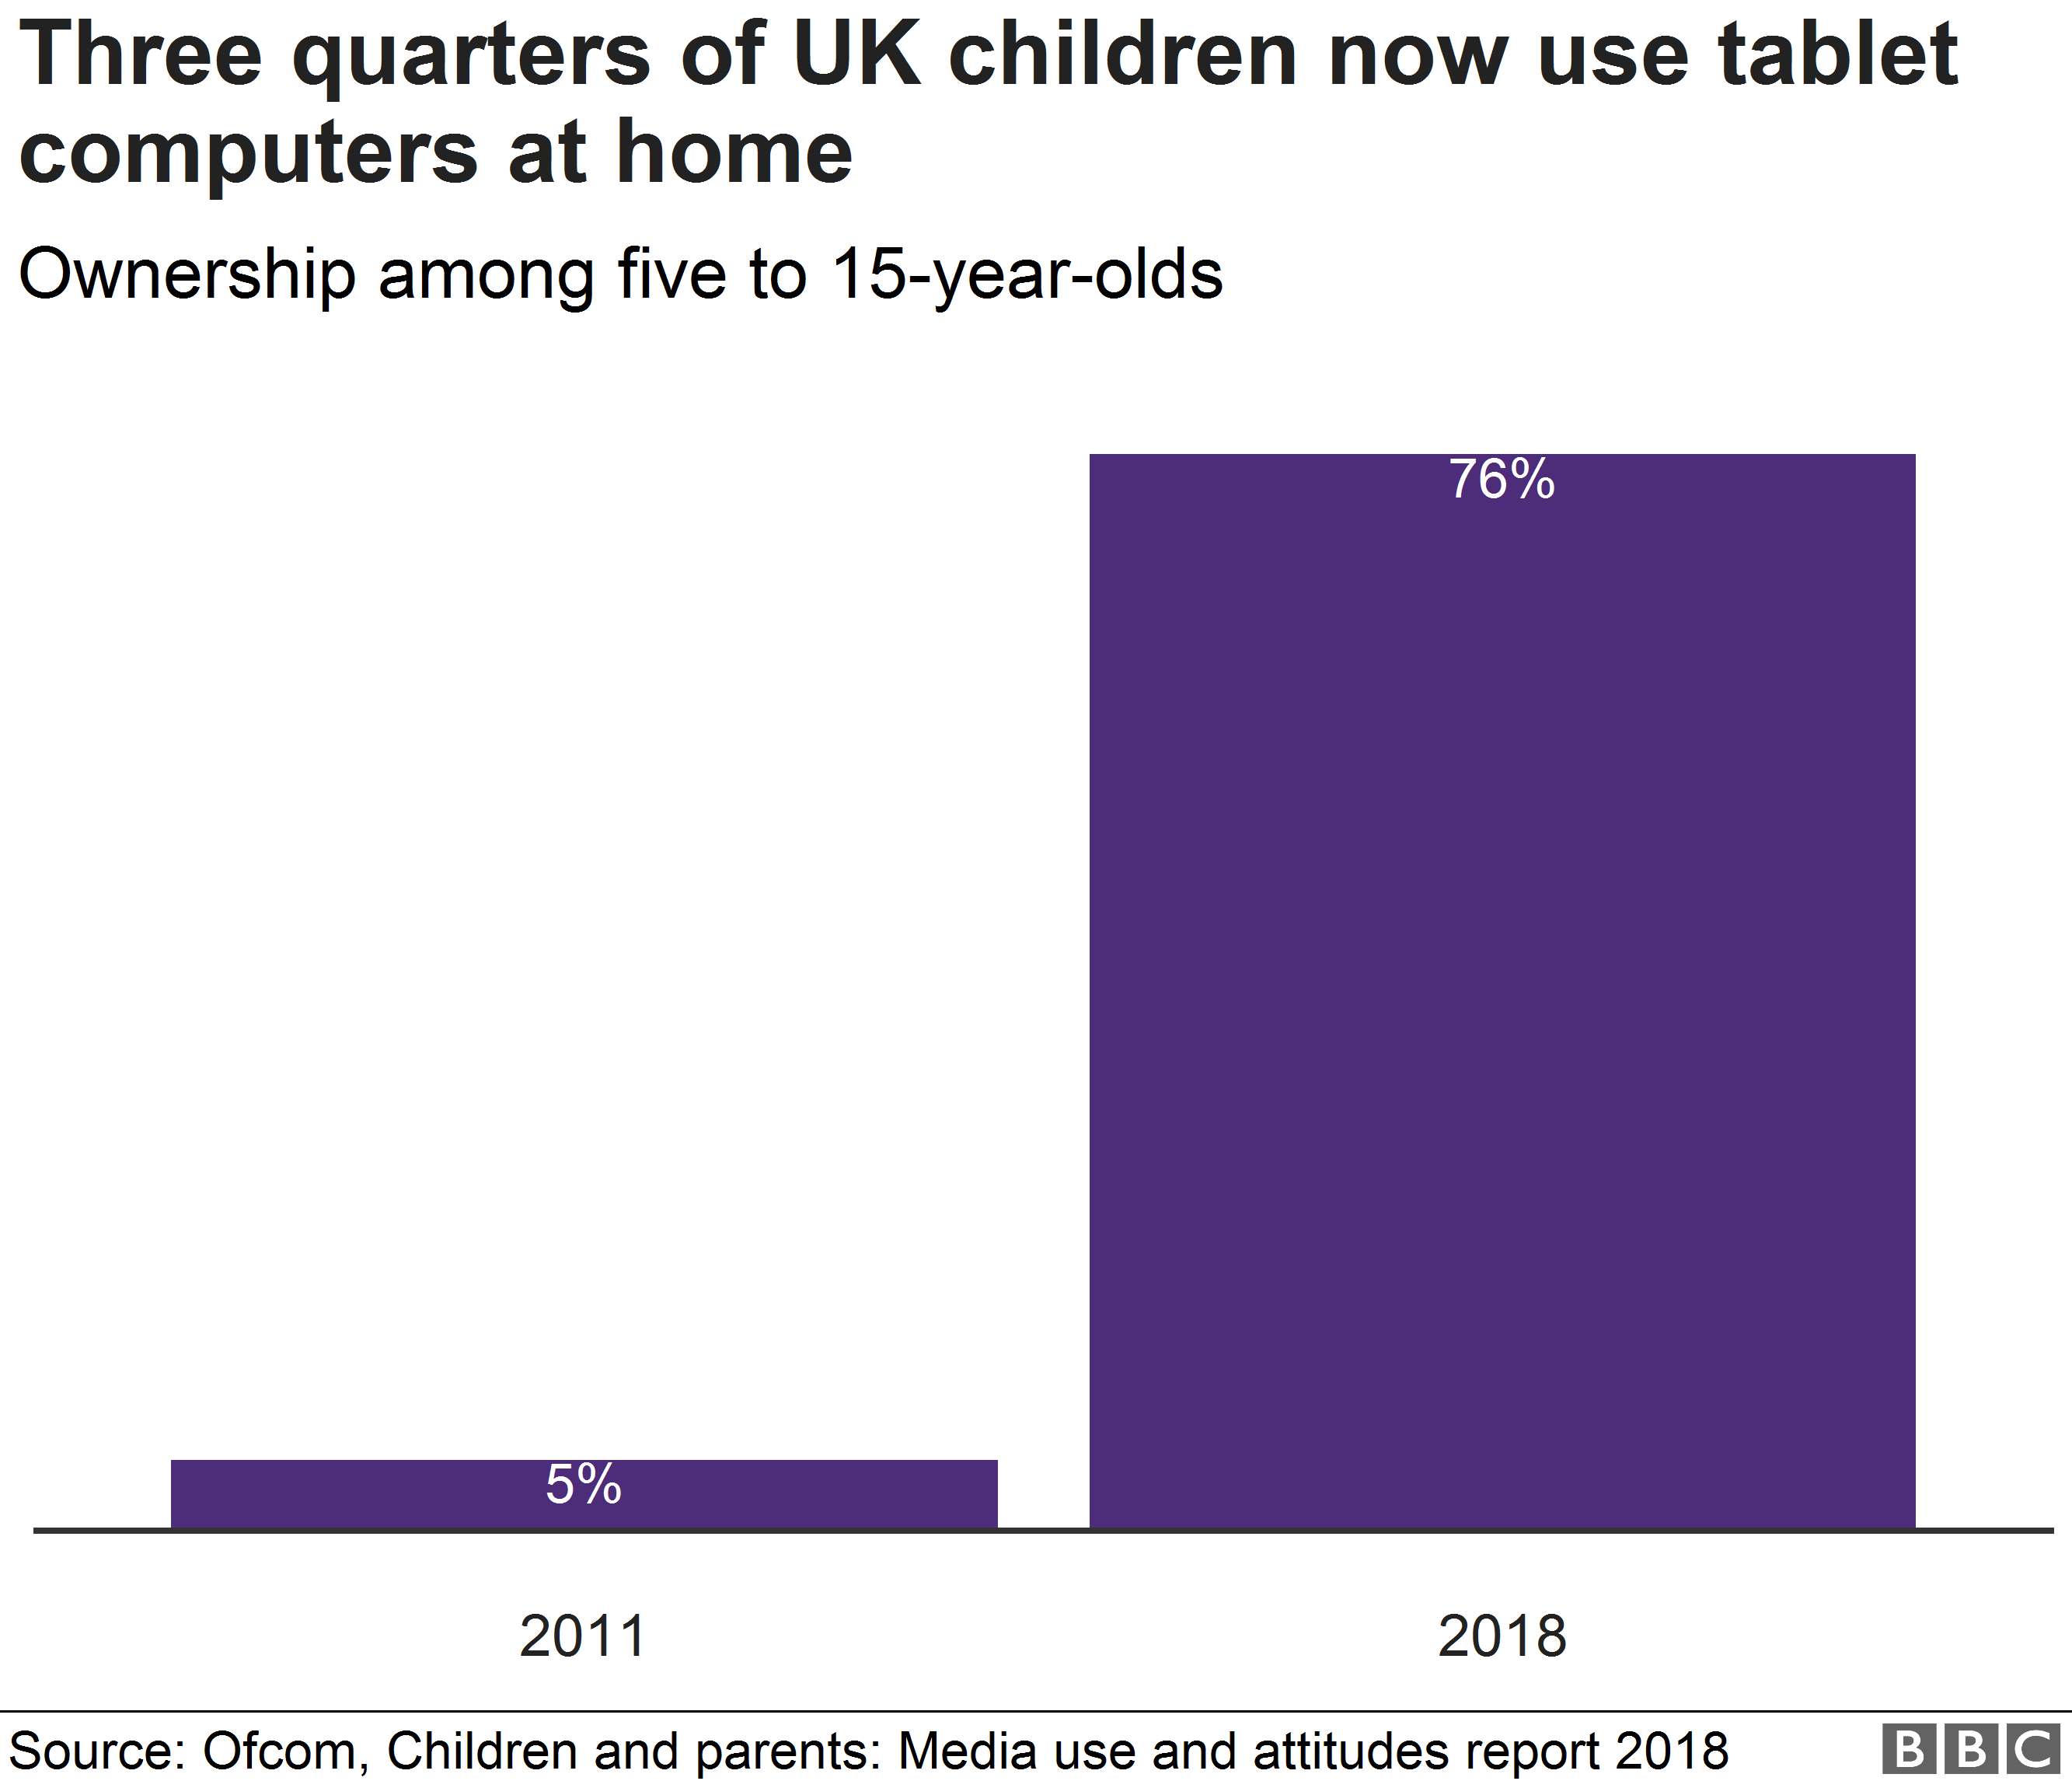 Chart showing tablet computer use by children